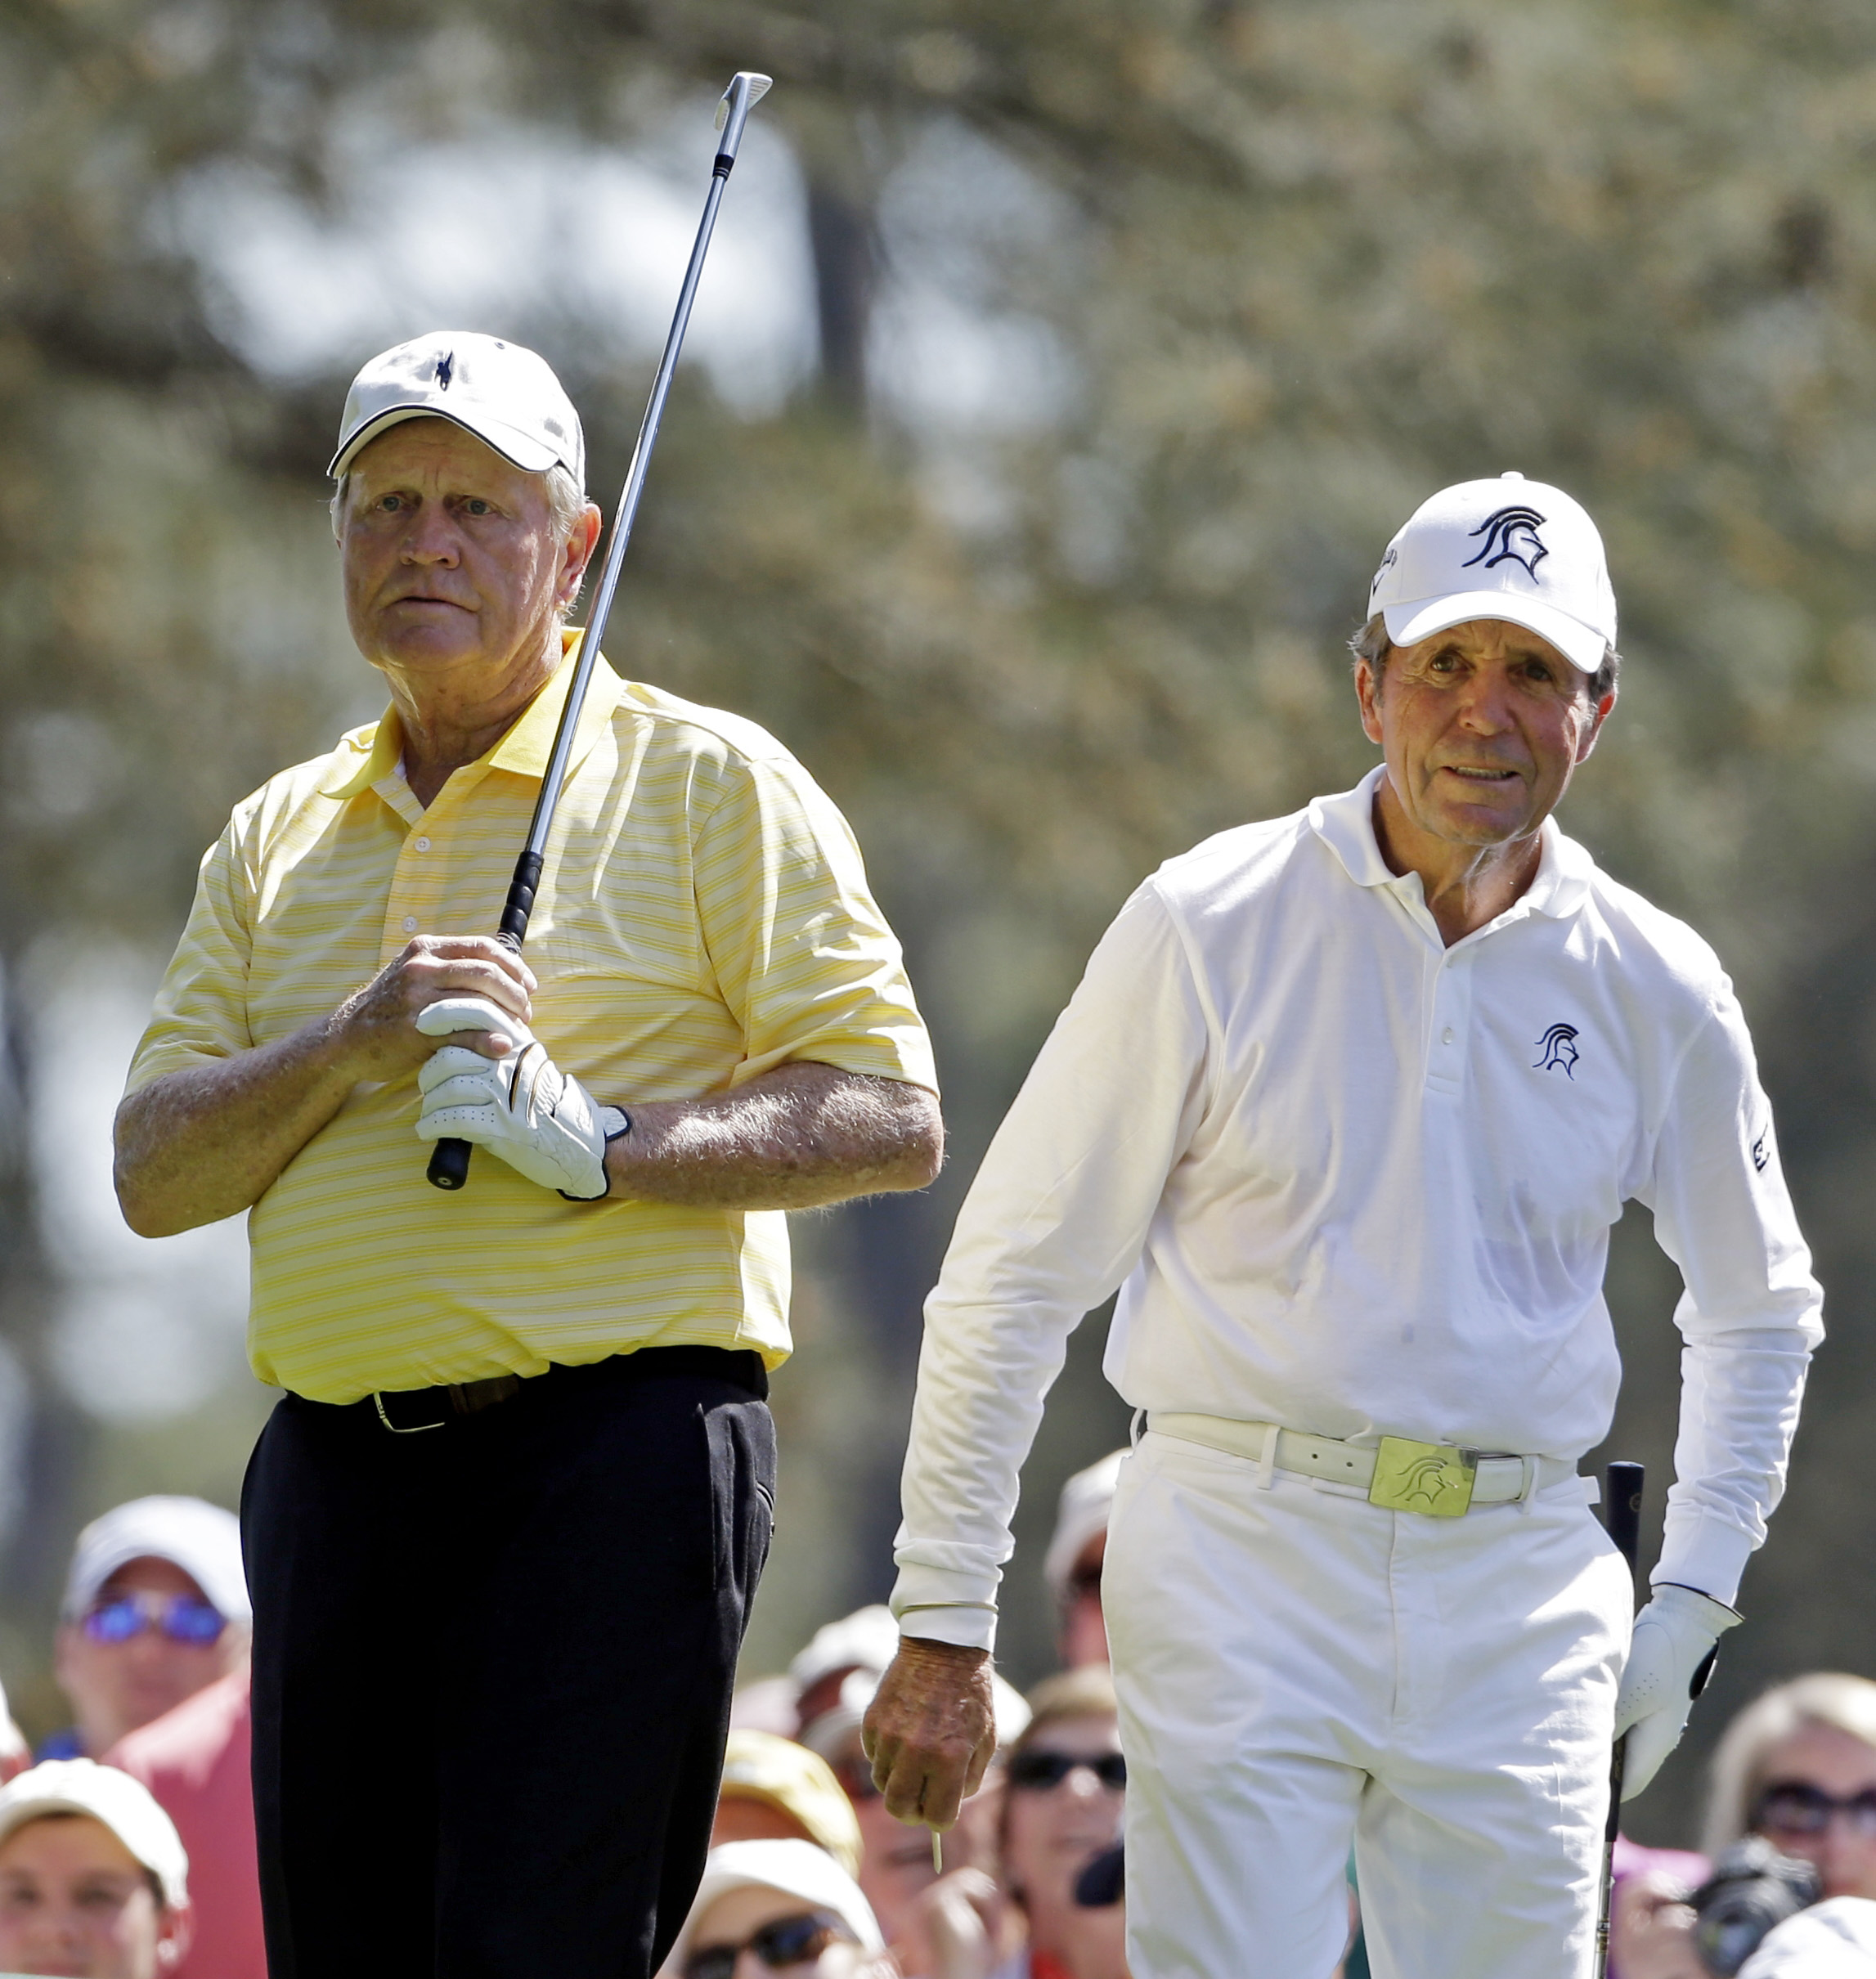 Gary Player, right, watches Jack Nicklaus' tee from the first hole during the par three competition before the Masters golf tournament Wednesday, April 10, 2013, in Augusta, Ga. (AP Photo/Darron Cummings)